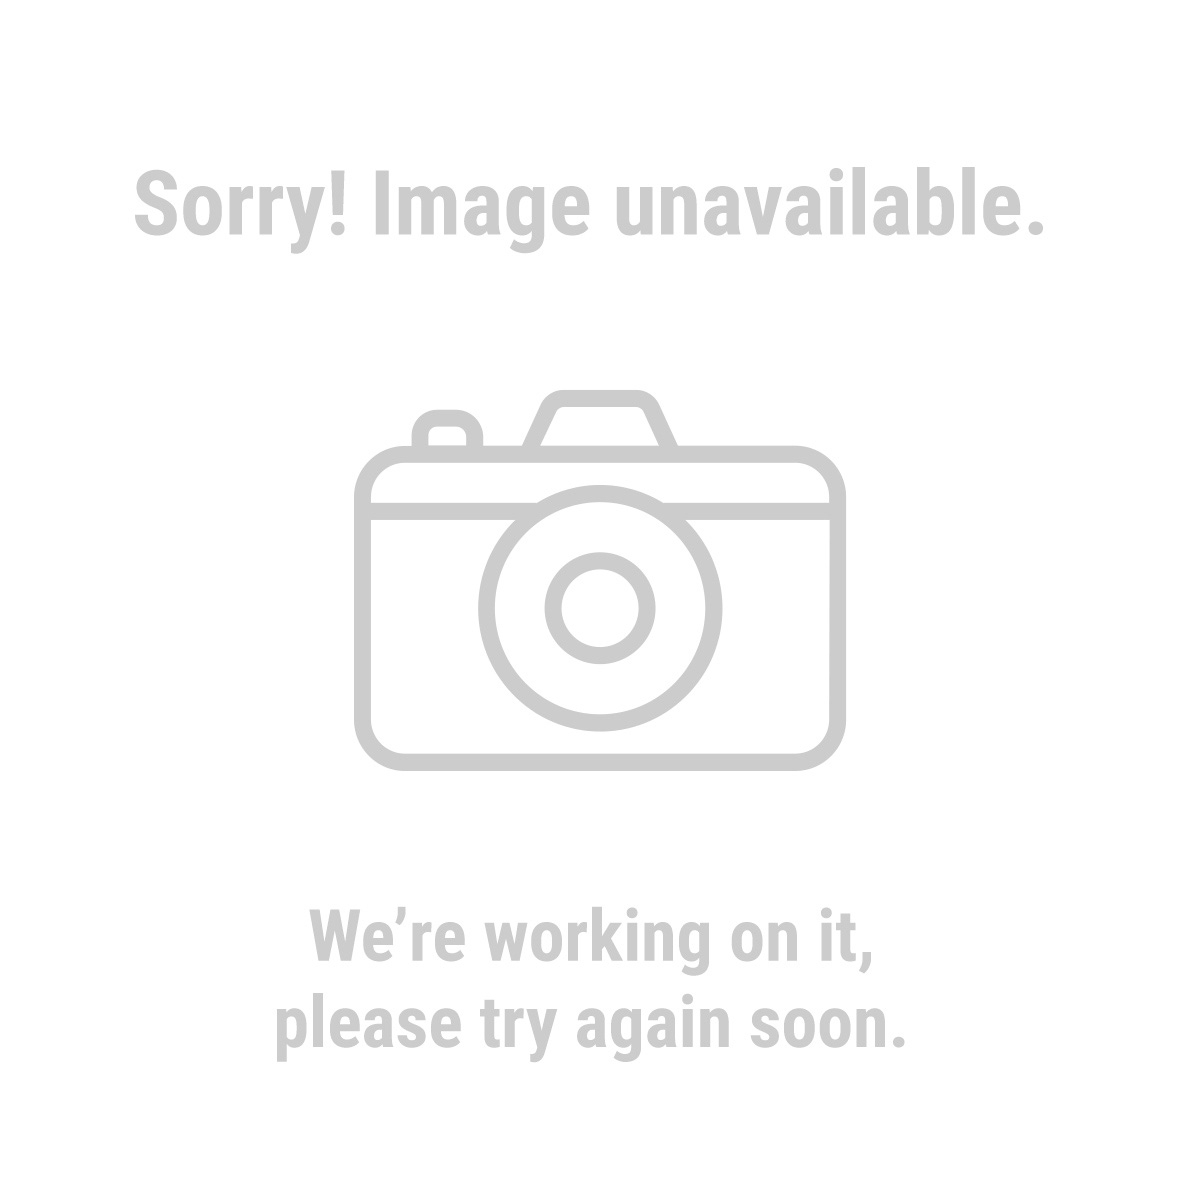 Central Pneumatic 98751 3-in-1 Air Framing Nailer